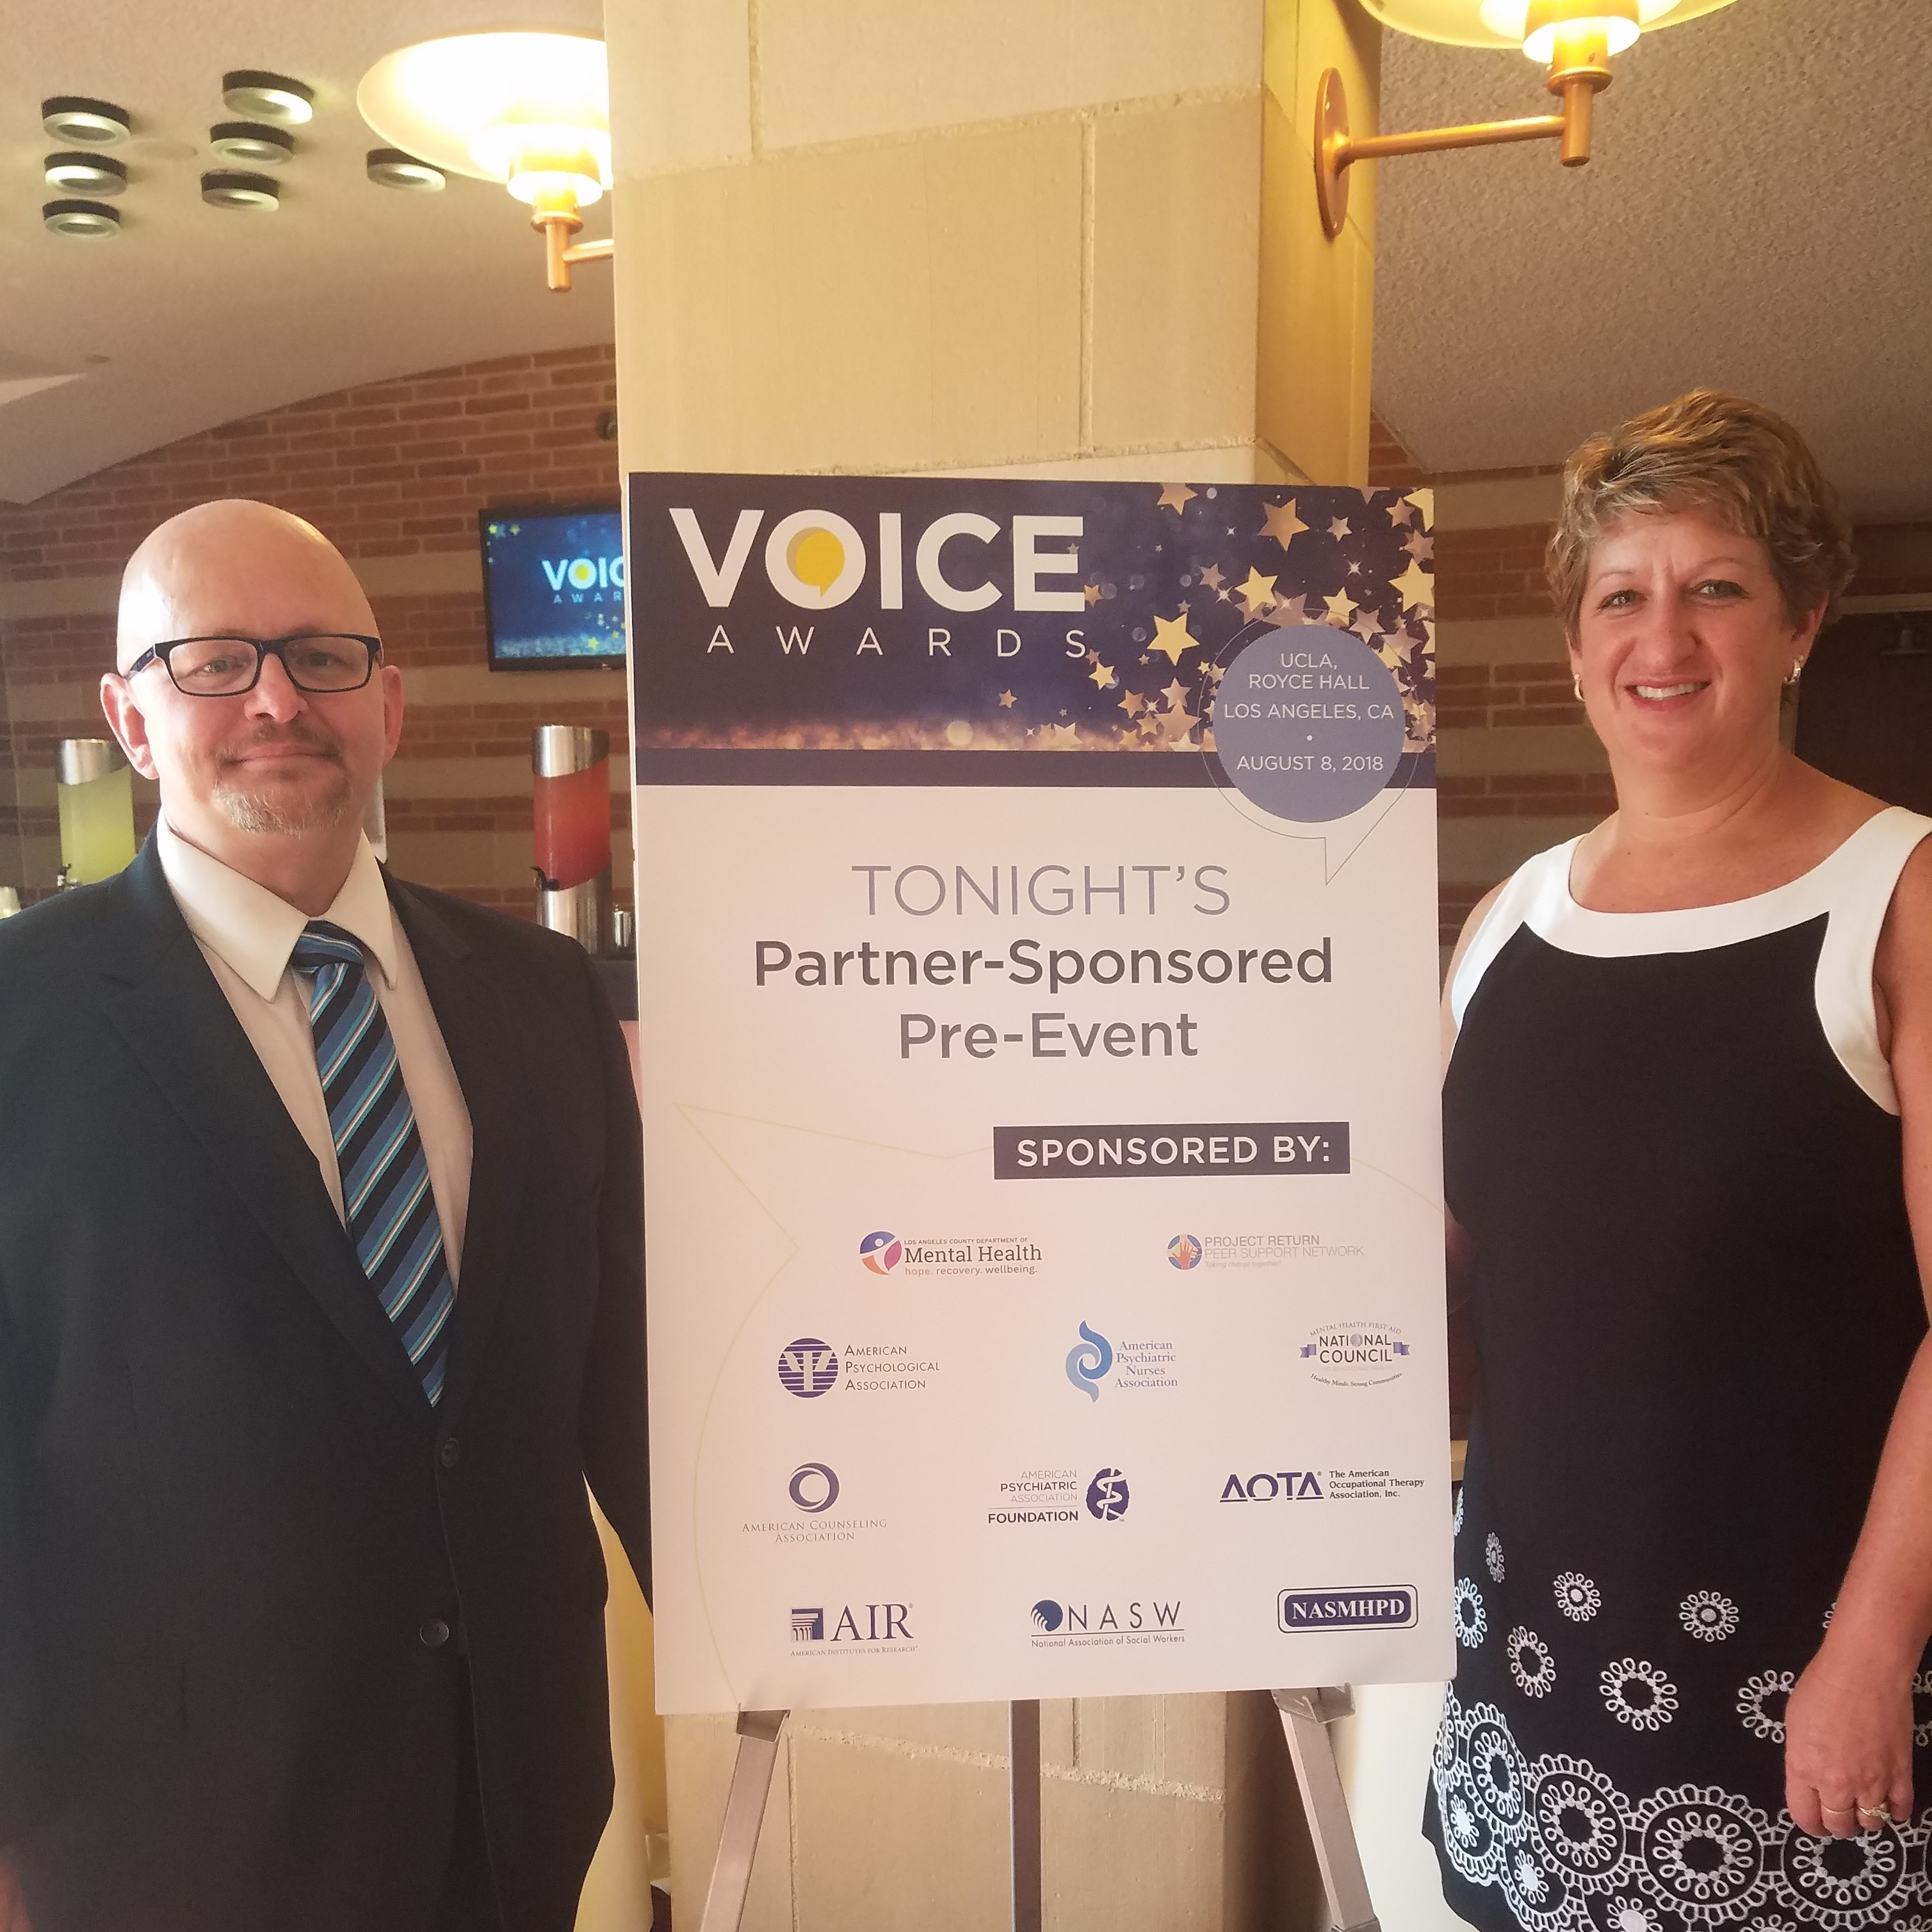 David Stoecker Wins 2018 SAMHSA Voice Awards